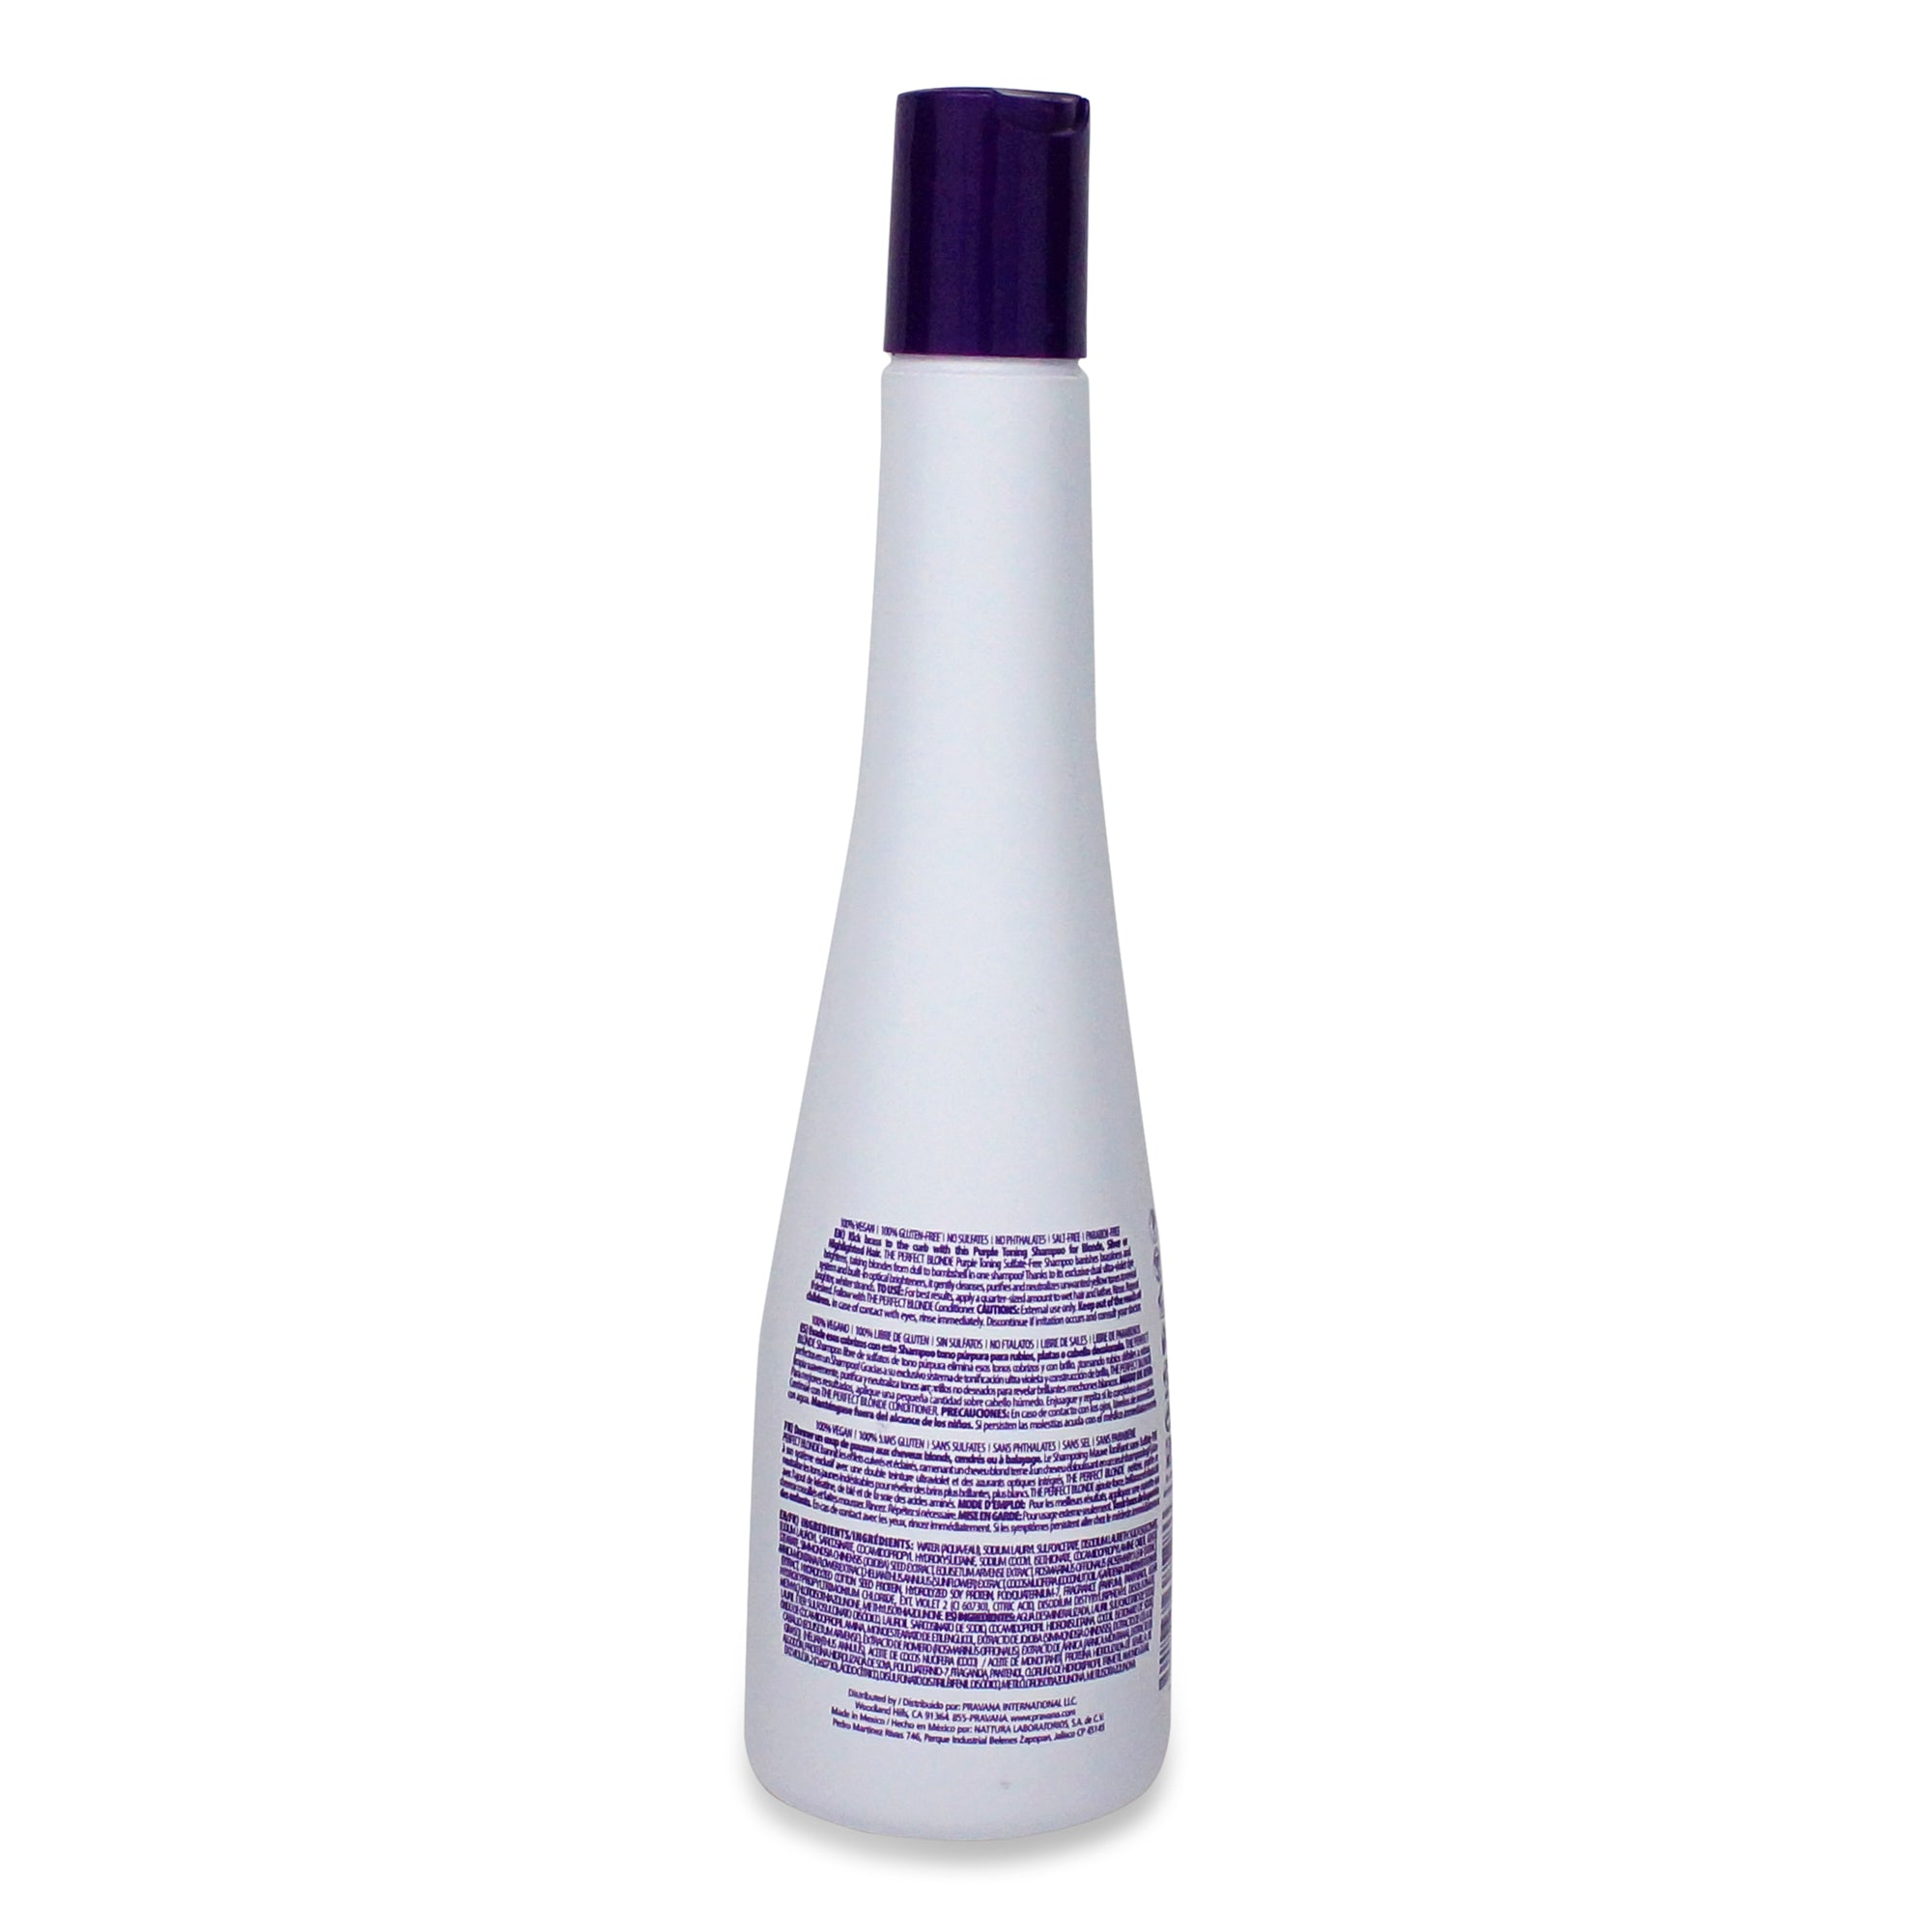 PRAVANA The Perfect Blonde Shampoo 10.1 Oz